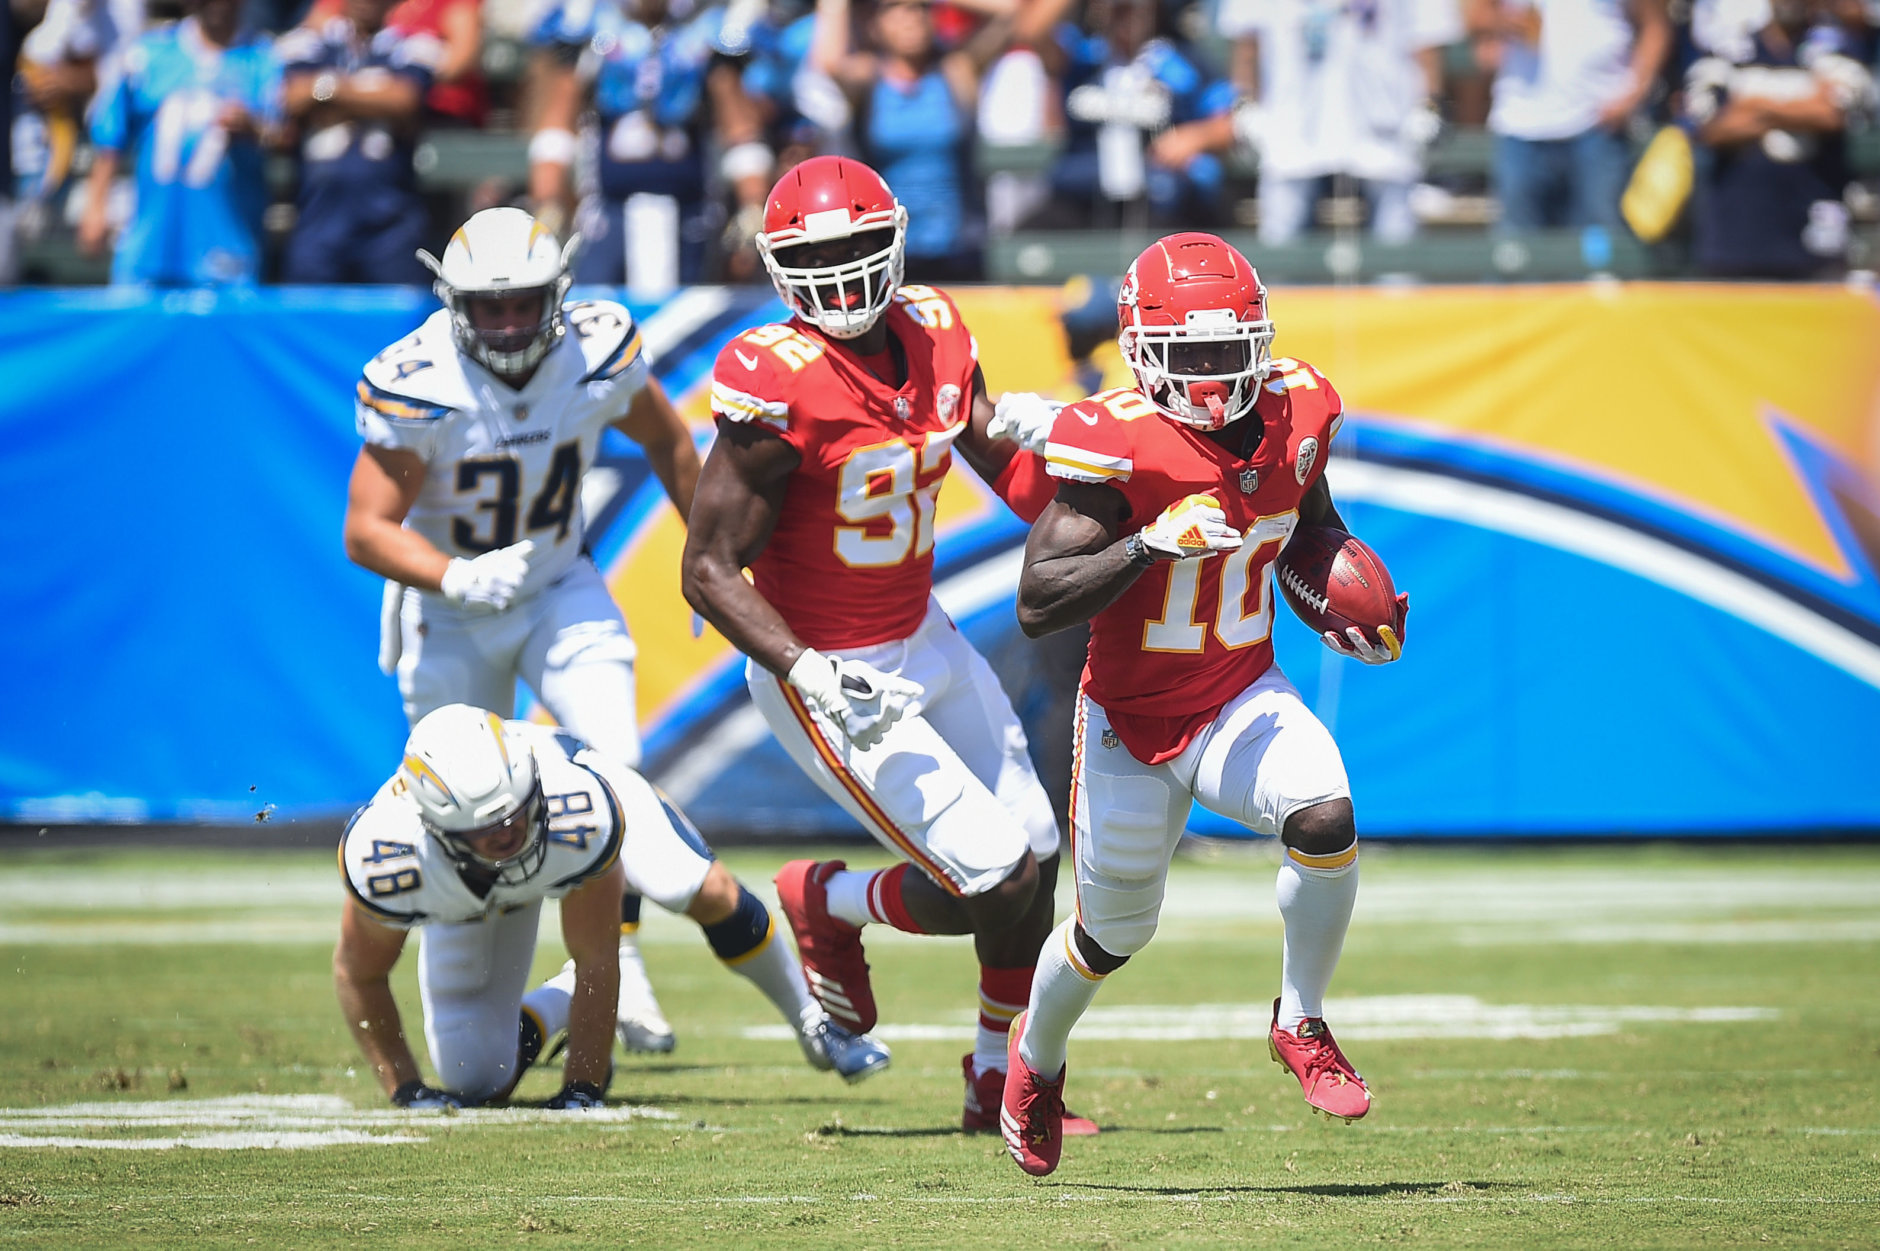 CARSON, CA - SEPTEMBER 09: Wide receiver Tyreek Hill #10 of the Kansas City Chiefs runs the ball for a touchdown in the first quarter against the Los Angeles Chargers at StubHub Center on September 9, 2018 in Carson, California. (Photo by Kevork Djansezian/Getty Images)